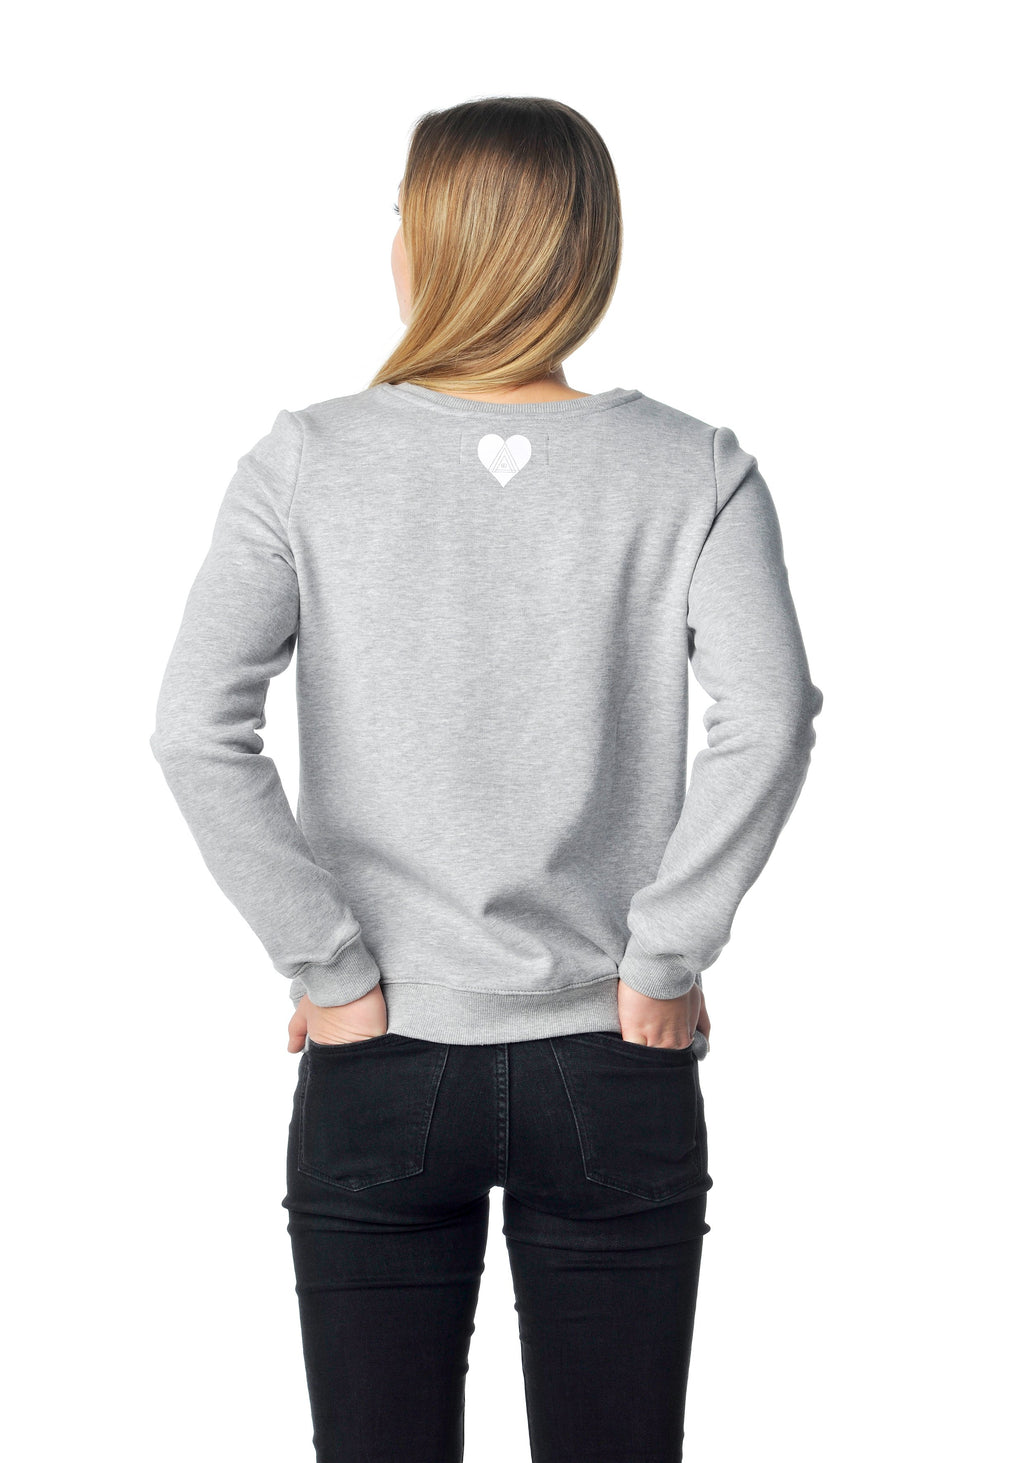 Hau di hera Sweater grau Girls